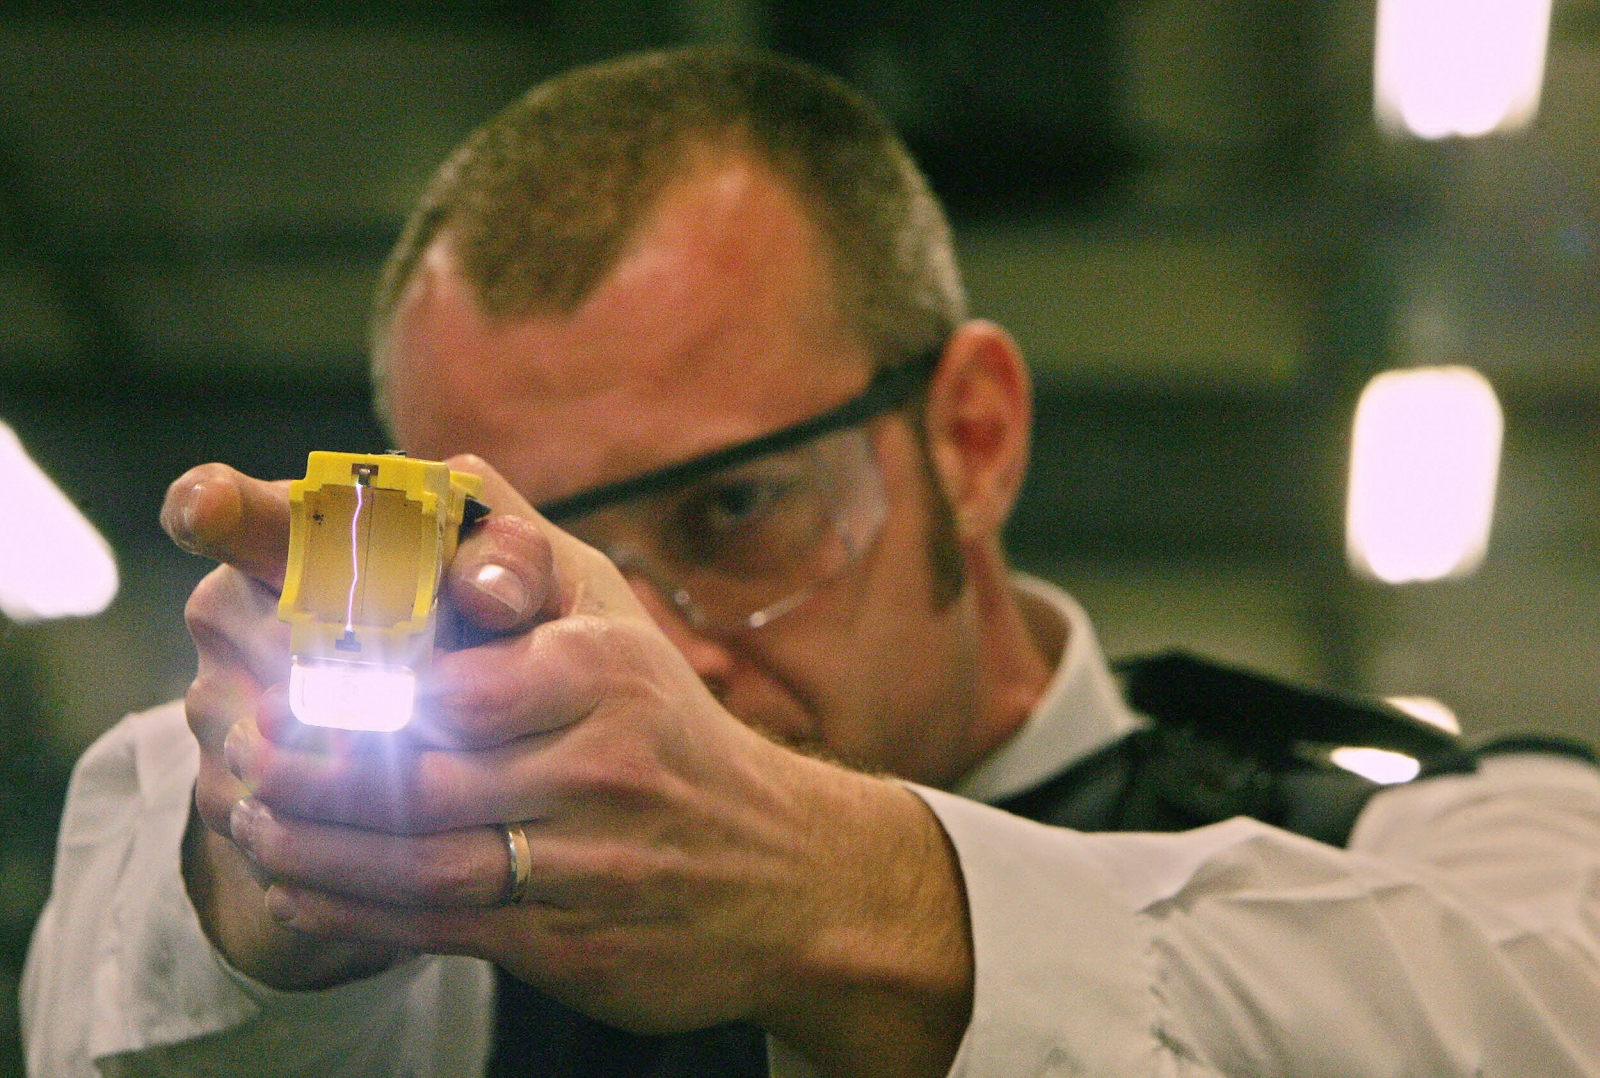 Taser use London police